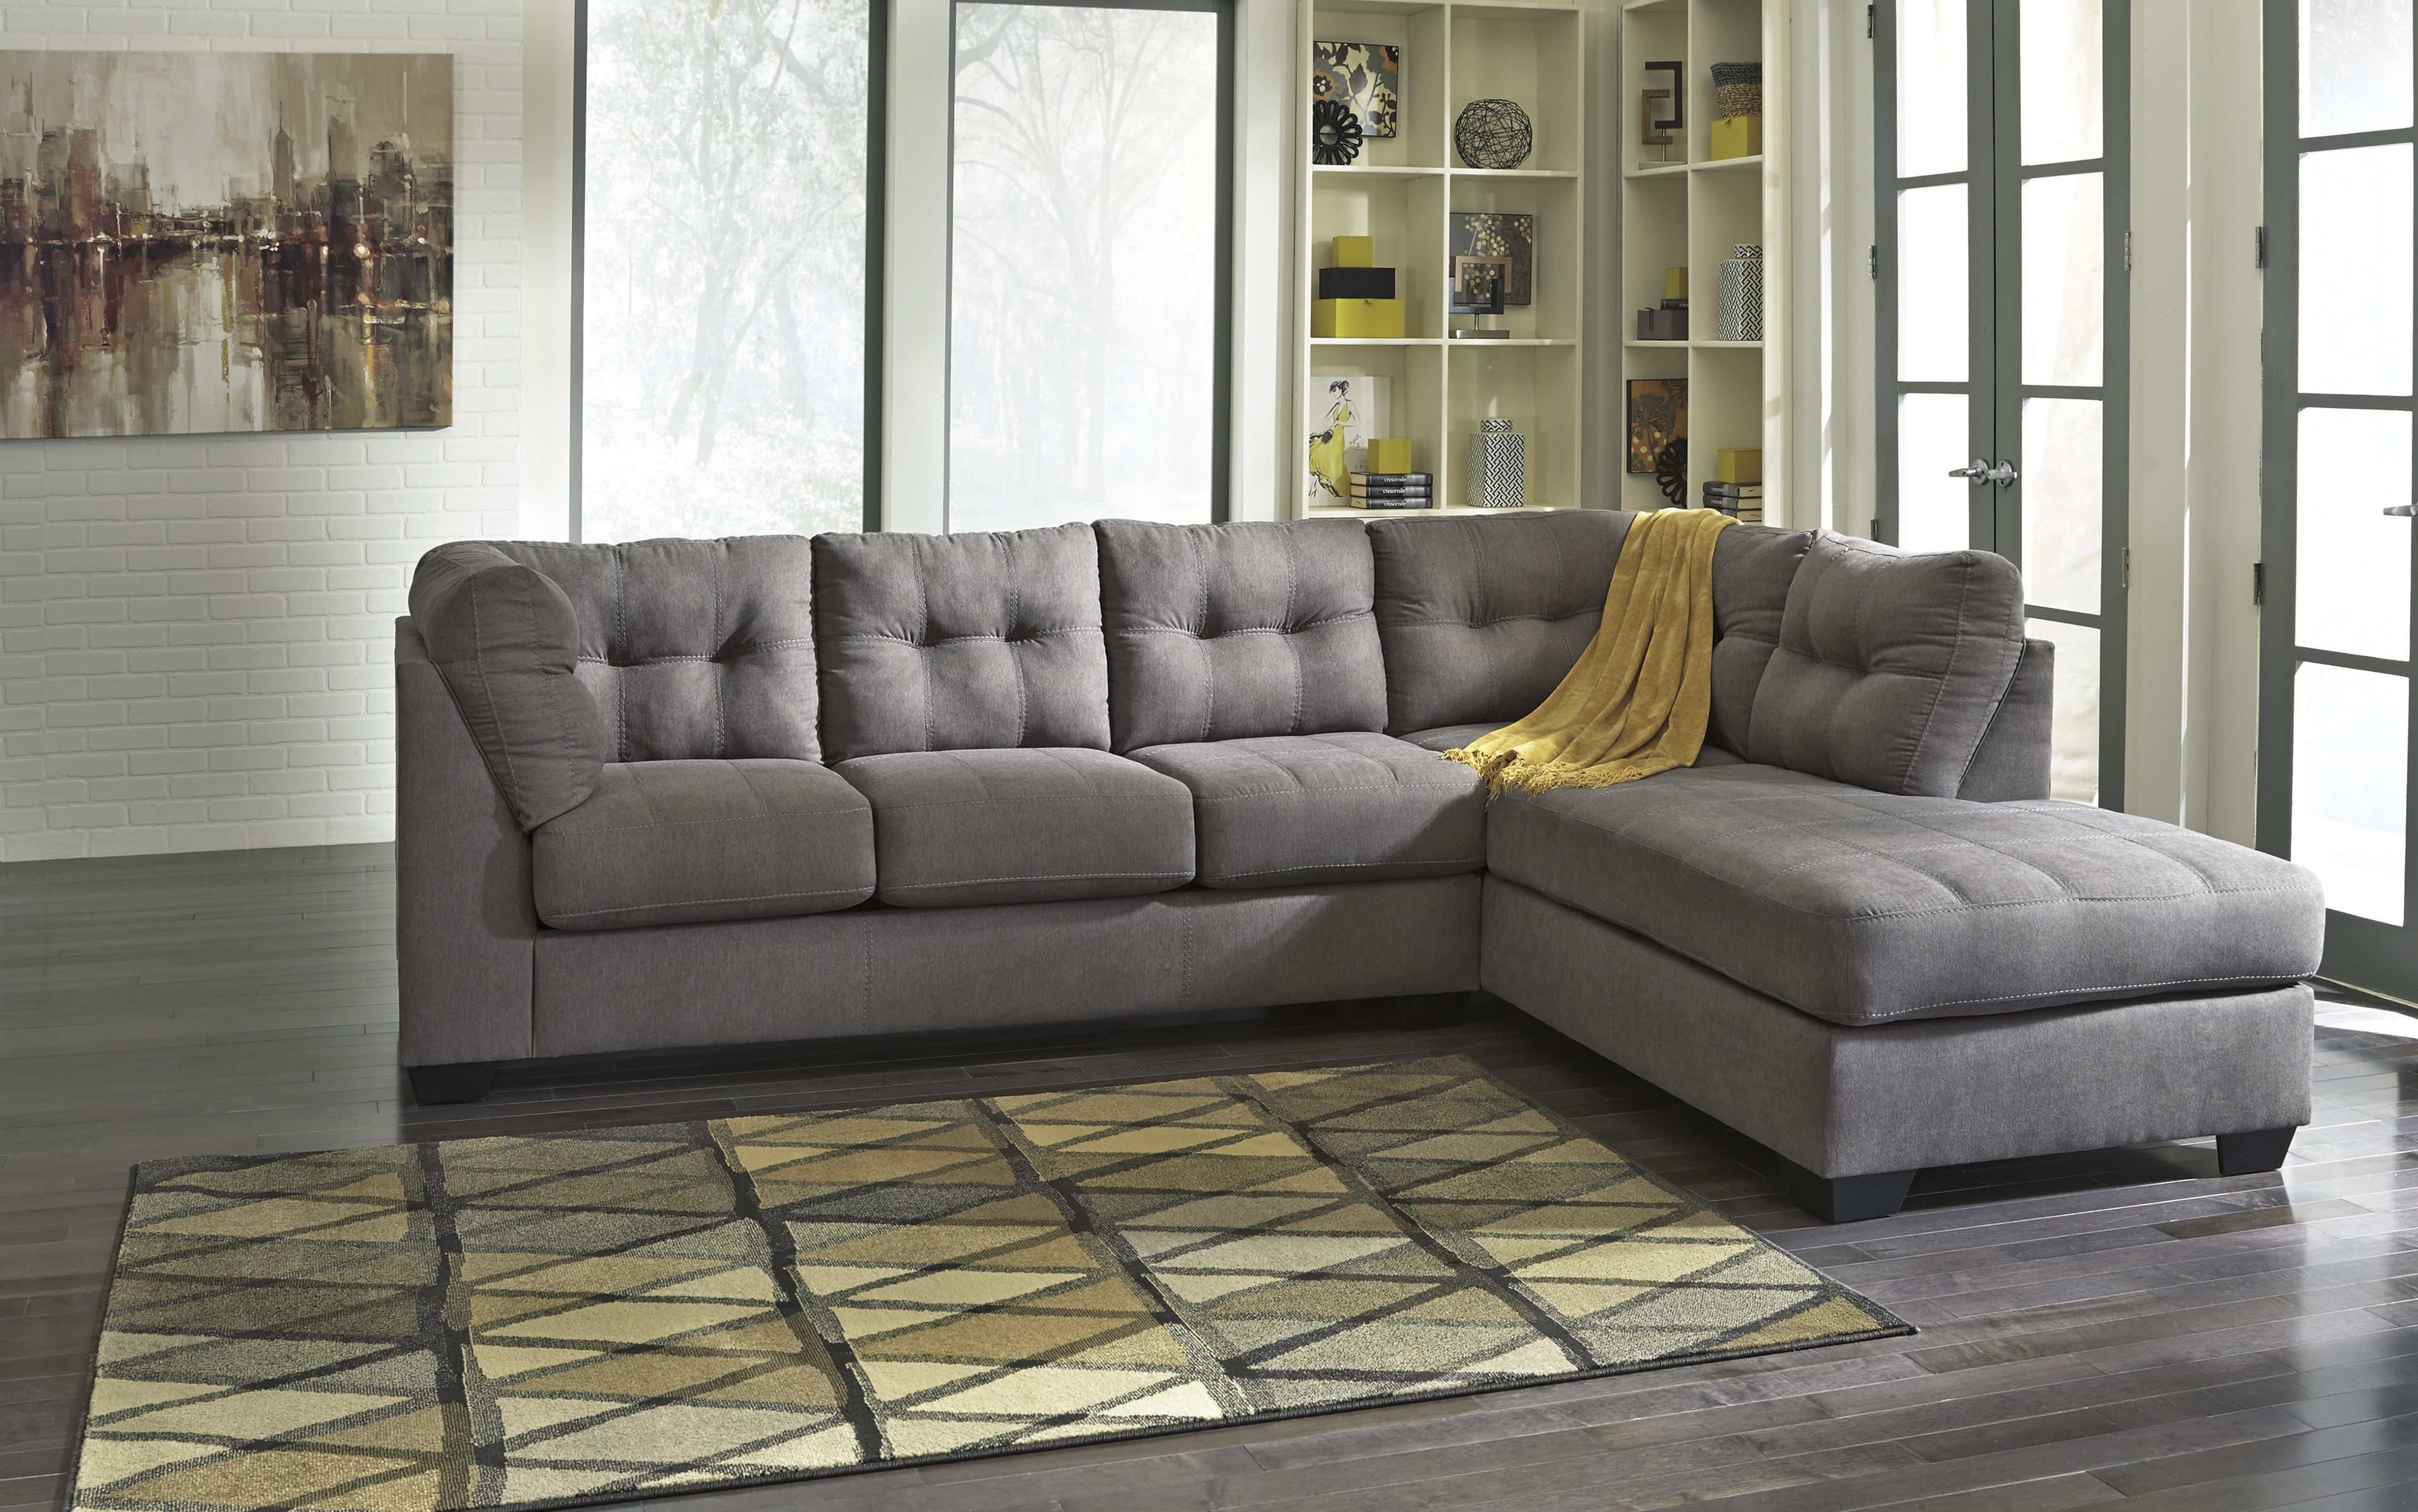 Ashley Furniture Maier Charcoal Raf Chaise Sectional | The Classy Home With Regard To Lucy Grey 2 Piece Sleeper Sectionals With Raf Chaise (View 7 of 25)